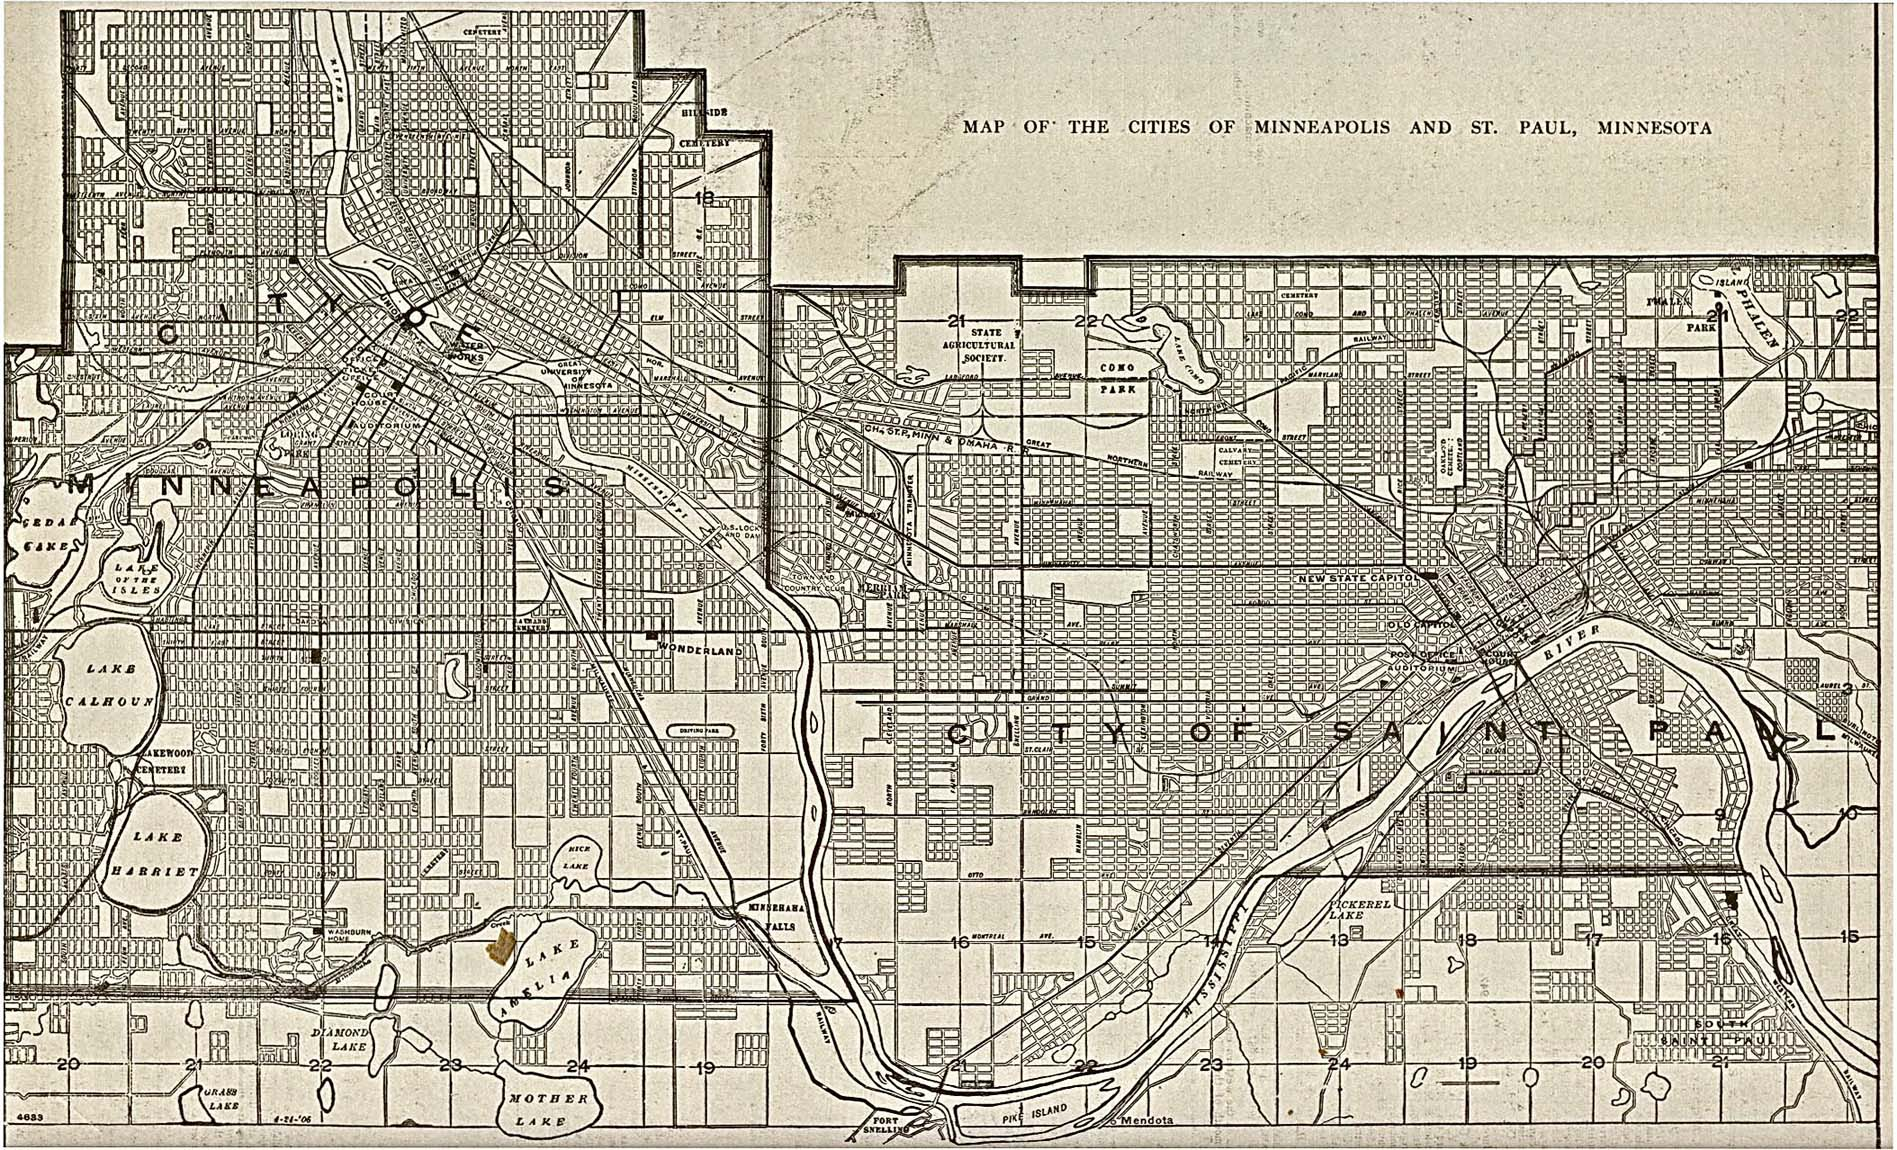 Historical Maps of U.S Cities. Minneapolis, Minnesota The New Encyclopedic Atlas and Gazetteer of the World. Edited and Revised by Francis J. Reynolds, 1917 (774K)